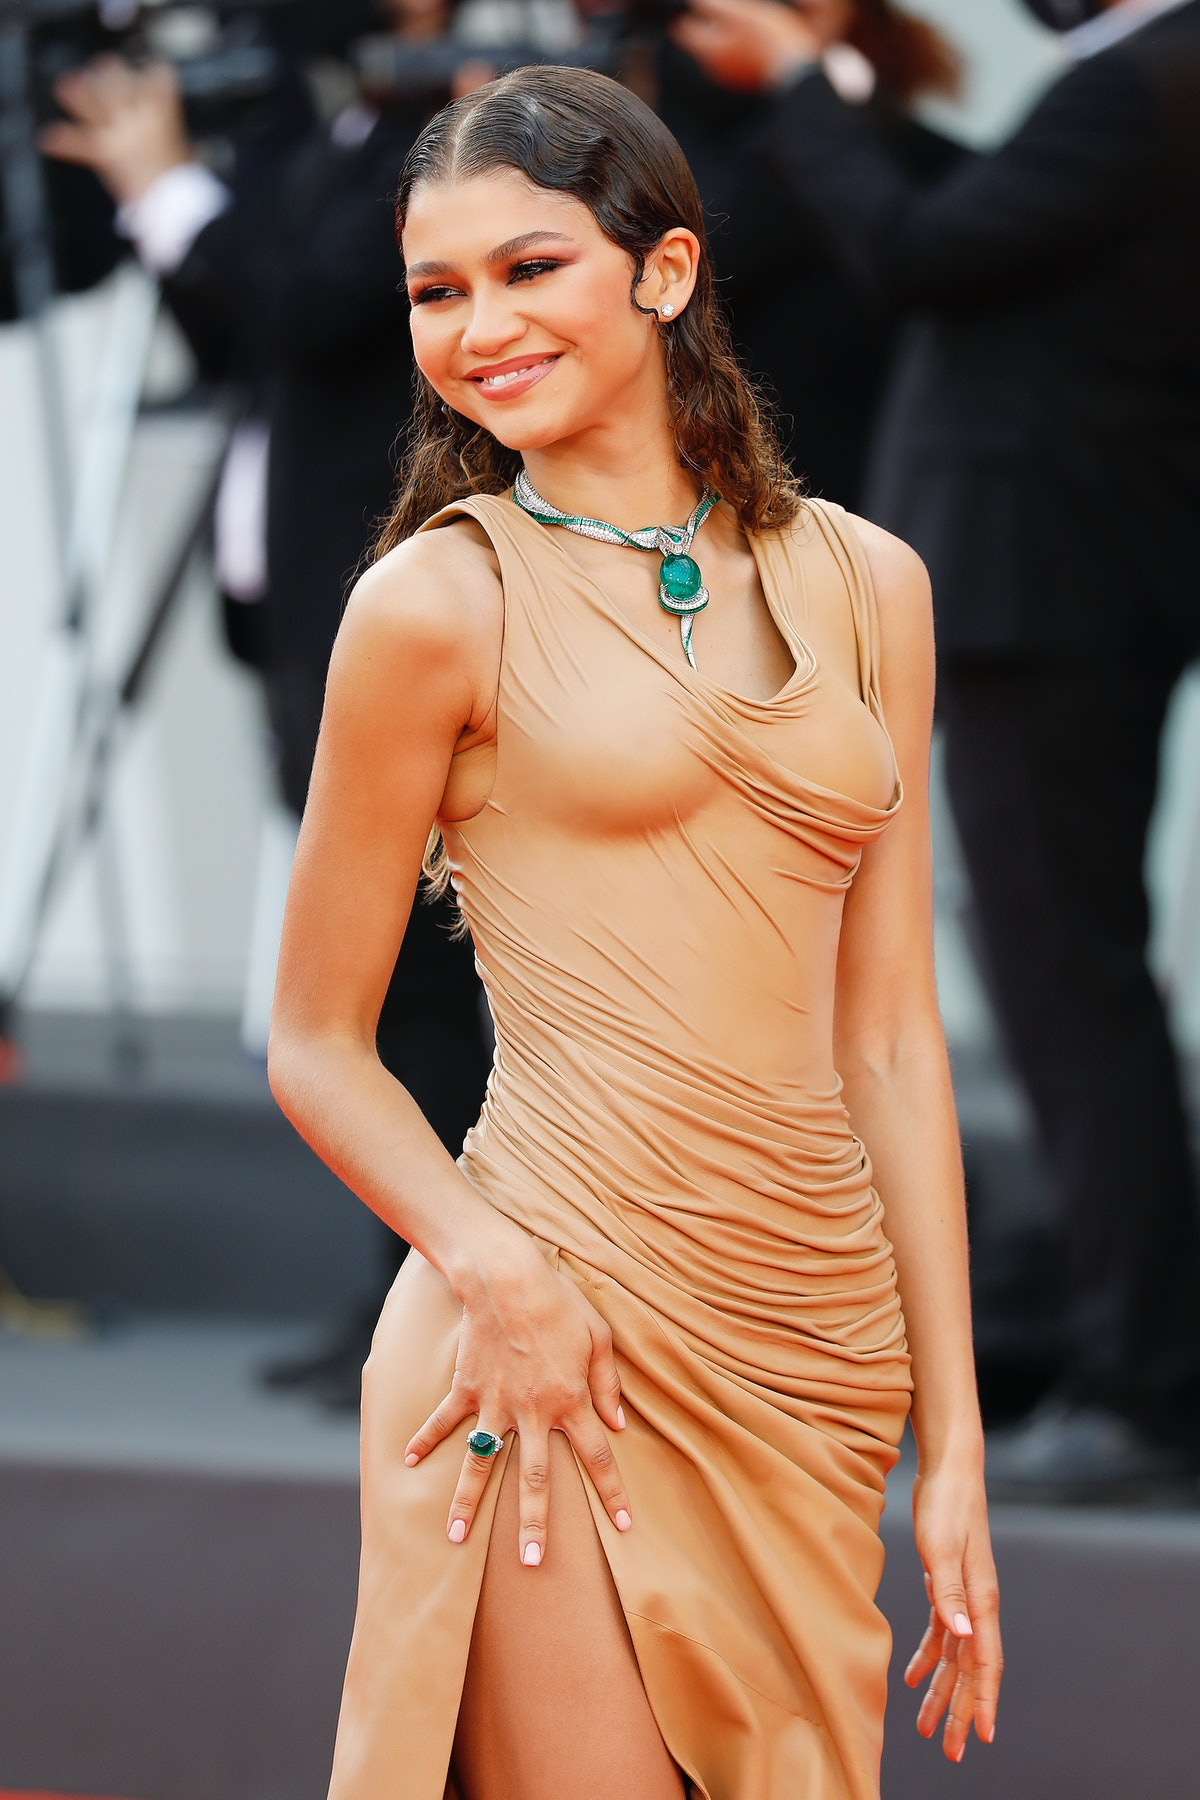 VENICE, ITALY - SEPTEMBER 03, 2021: Zendaya arrives on the red carpet for 'Dune' during the 78th Ven...